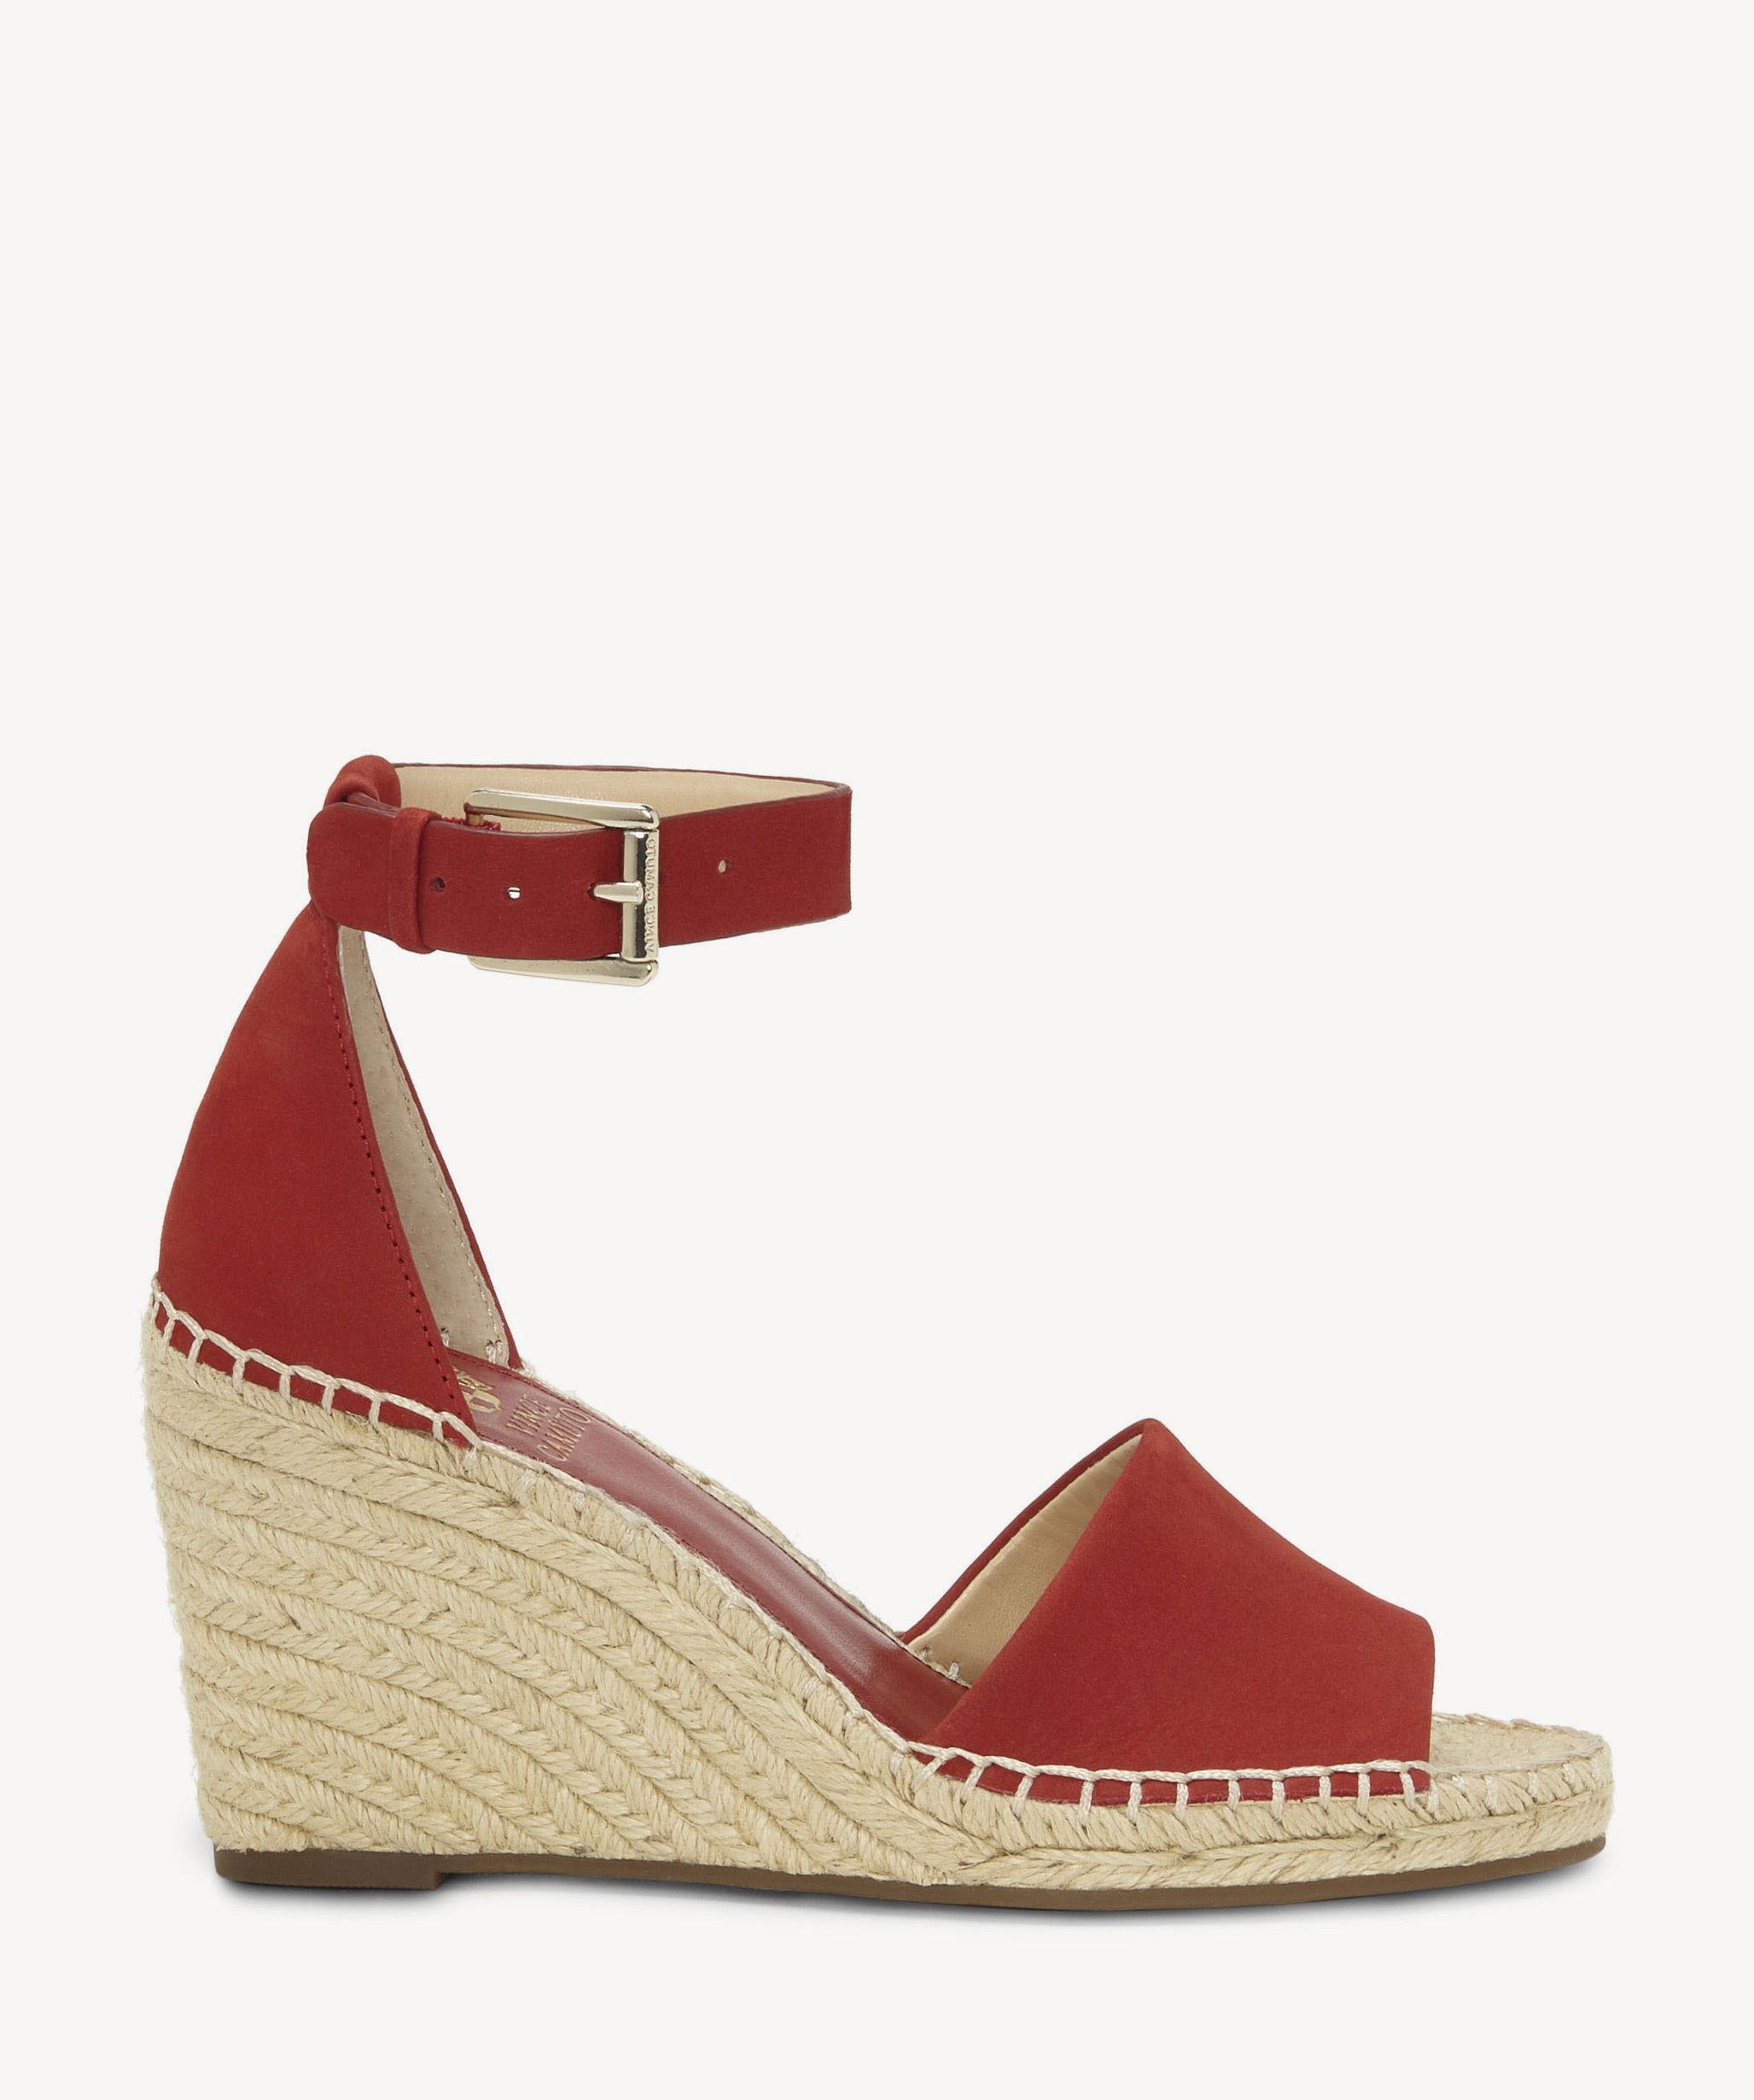 ae7d6ac272 Vince Camuto Leera Espadrille Wedges Cherry Red | Size 8.5 Leather From  Sole Society